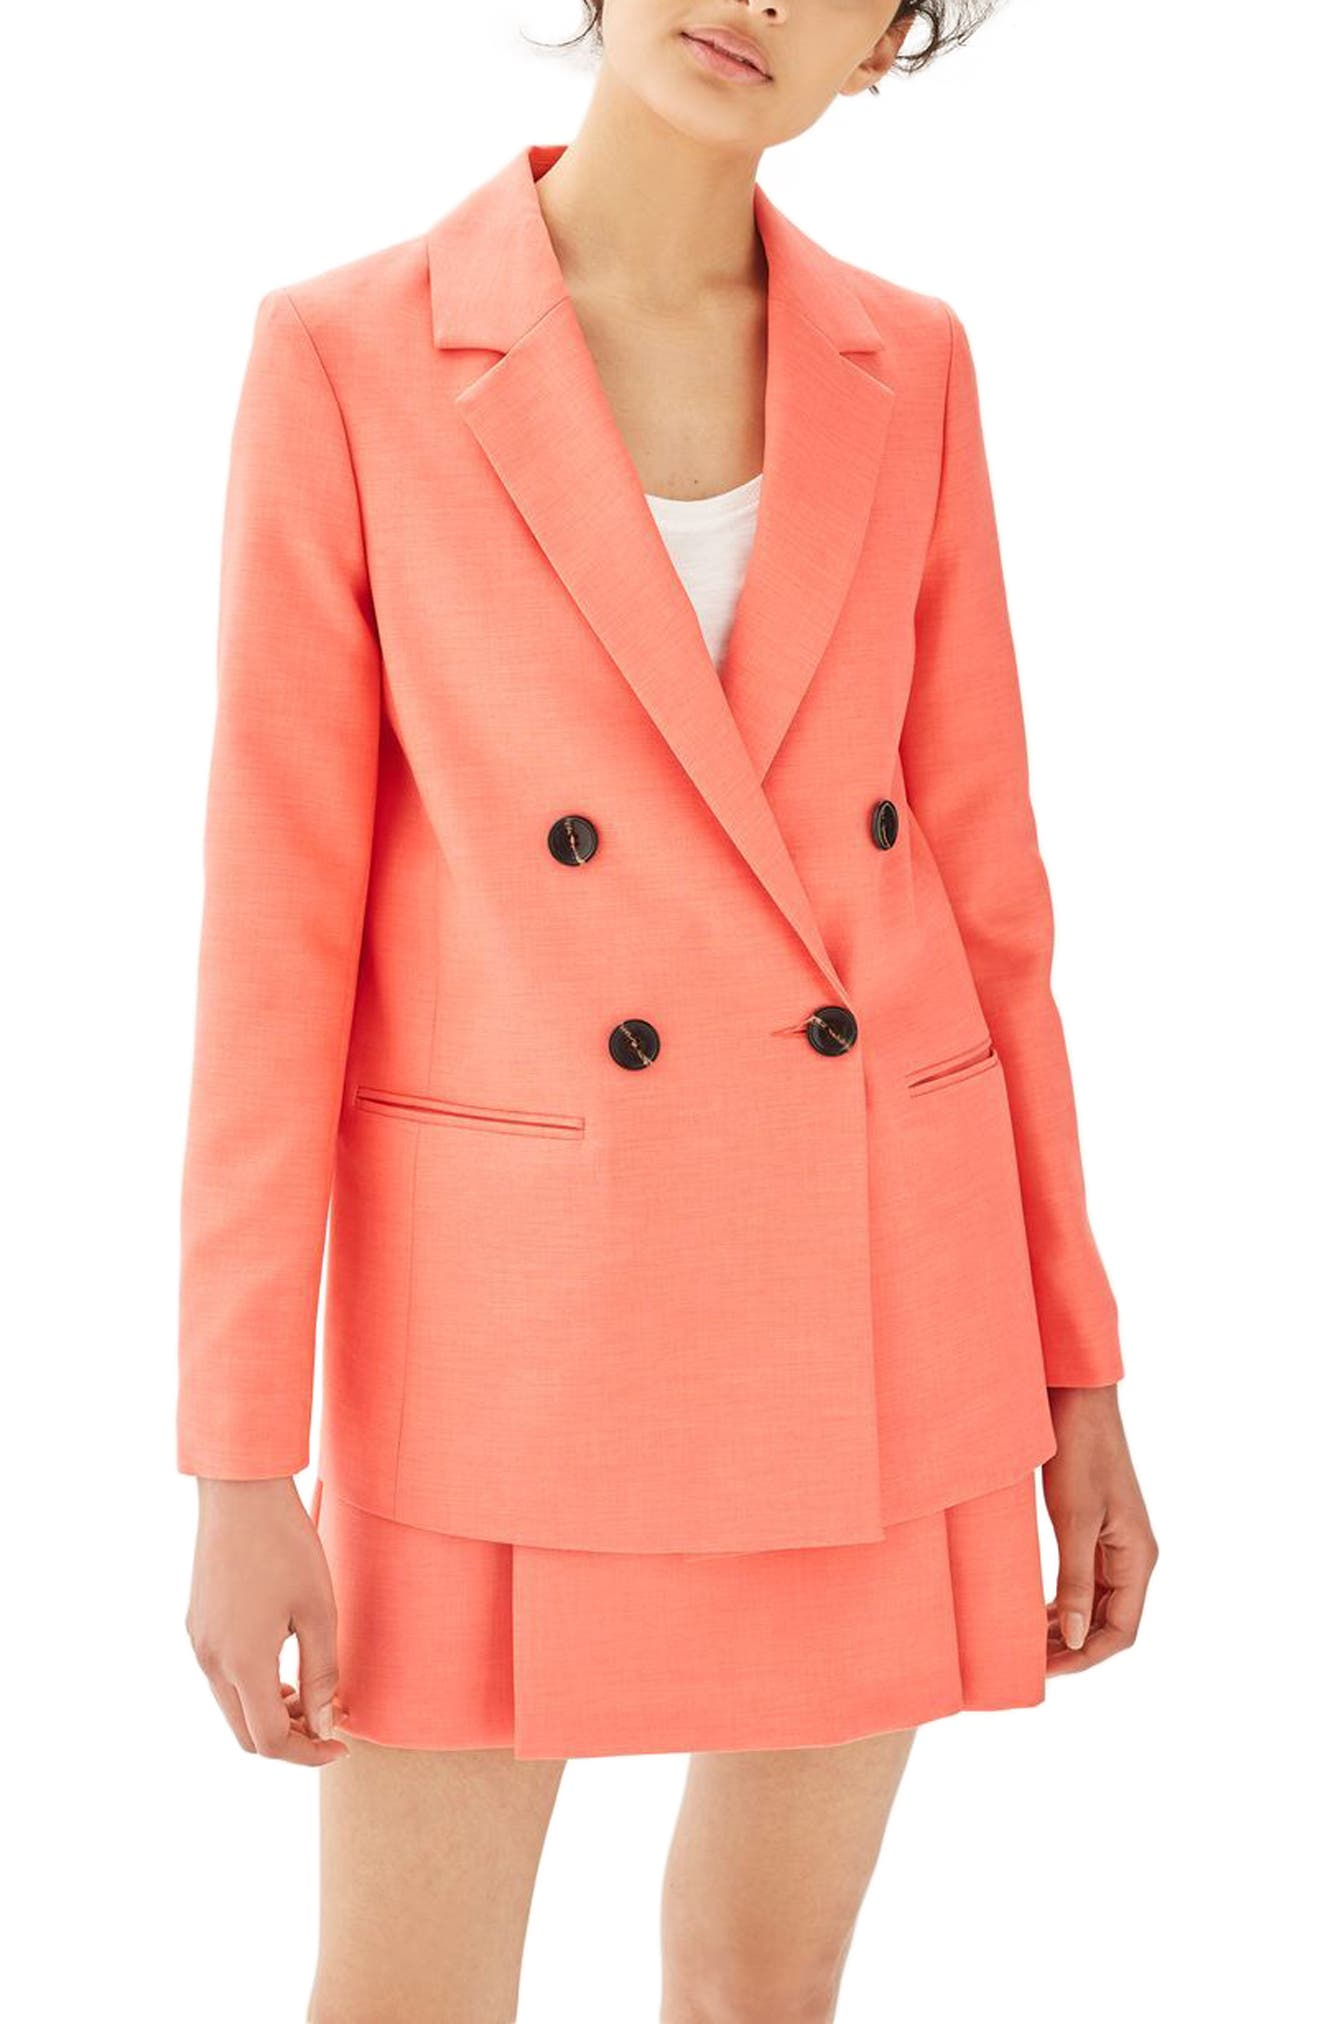 Main Image - Topshop Ella Double Breasted Suit Jacket